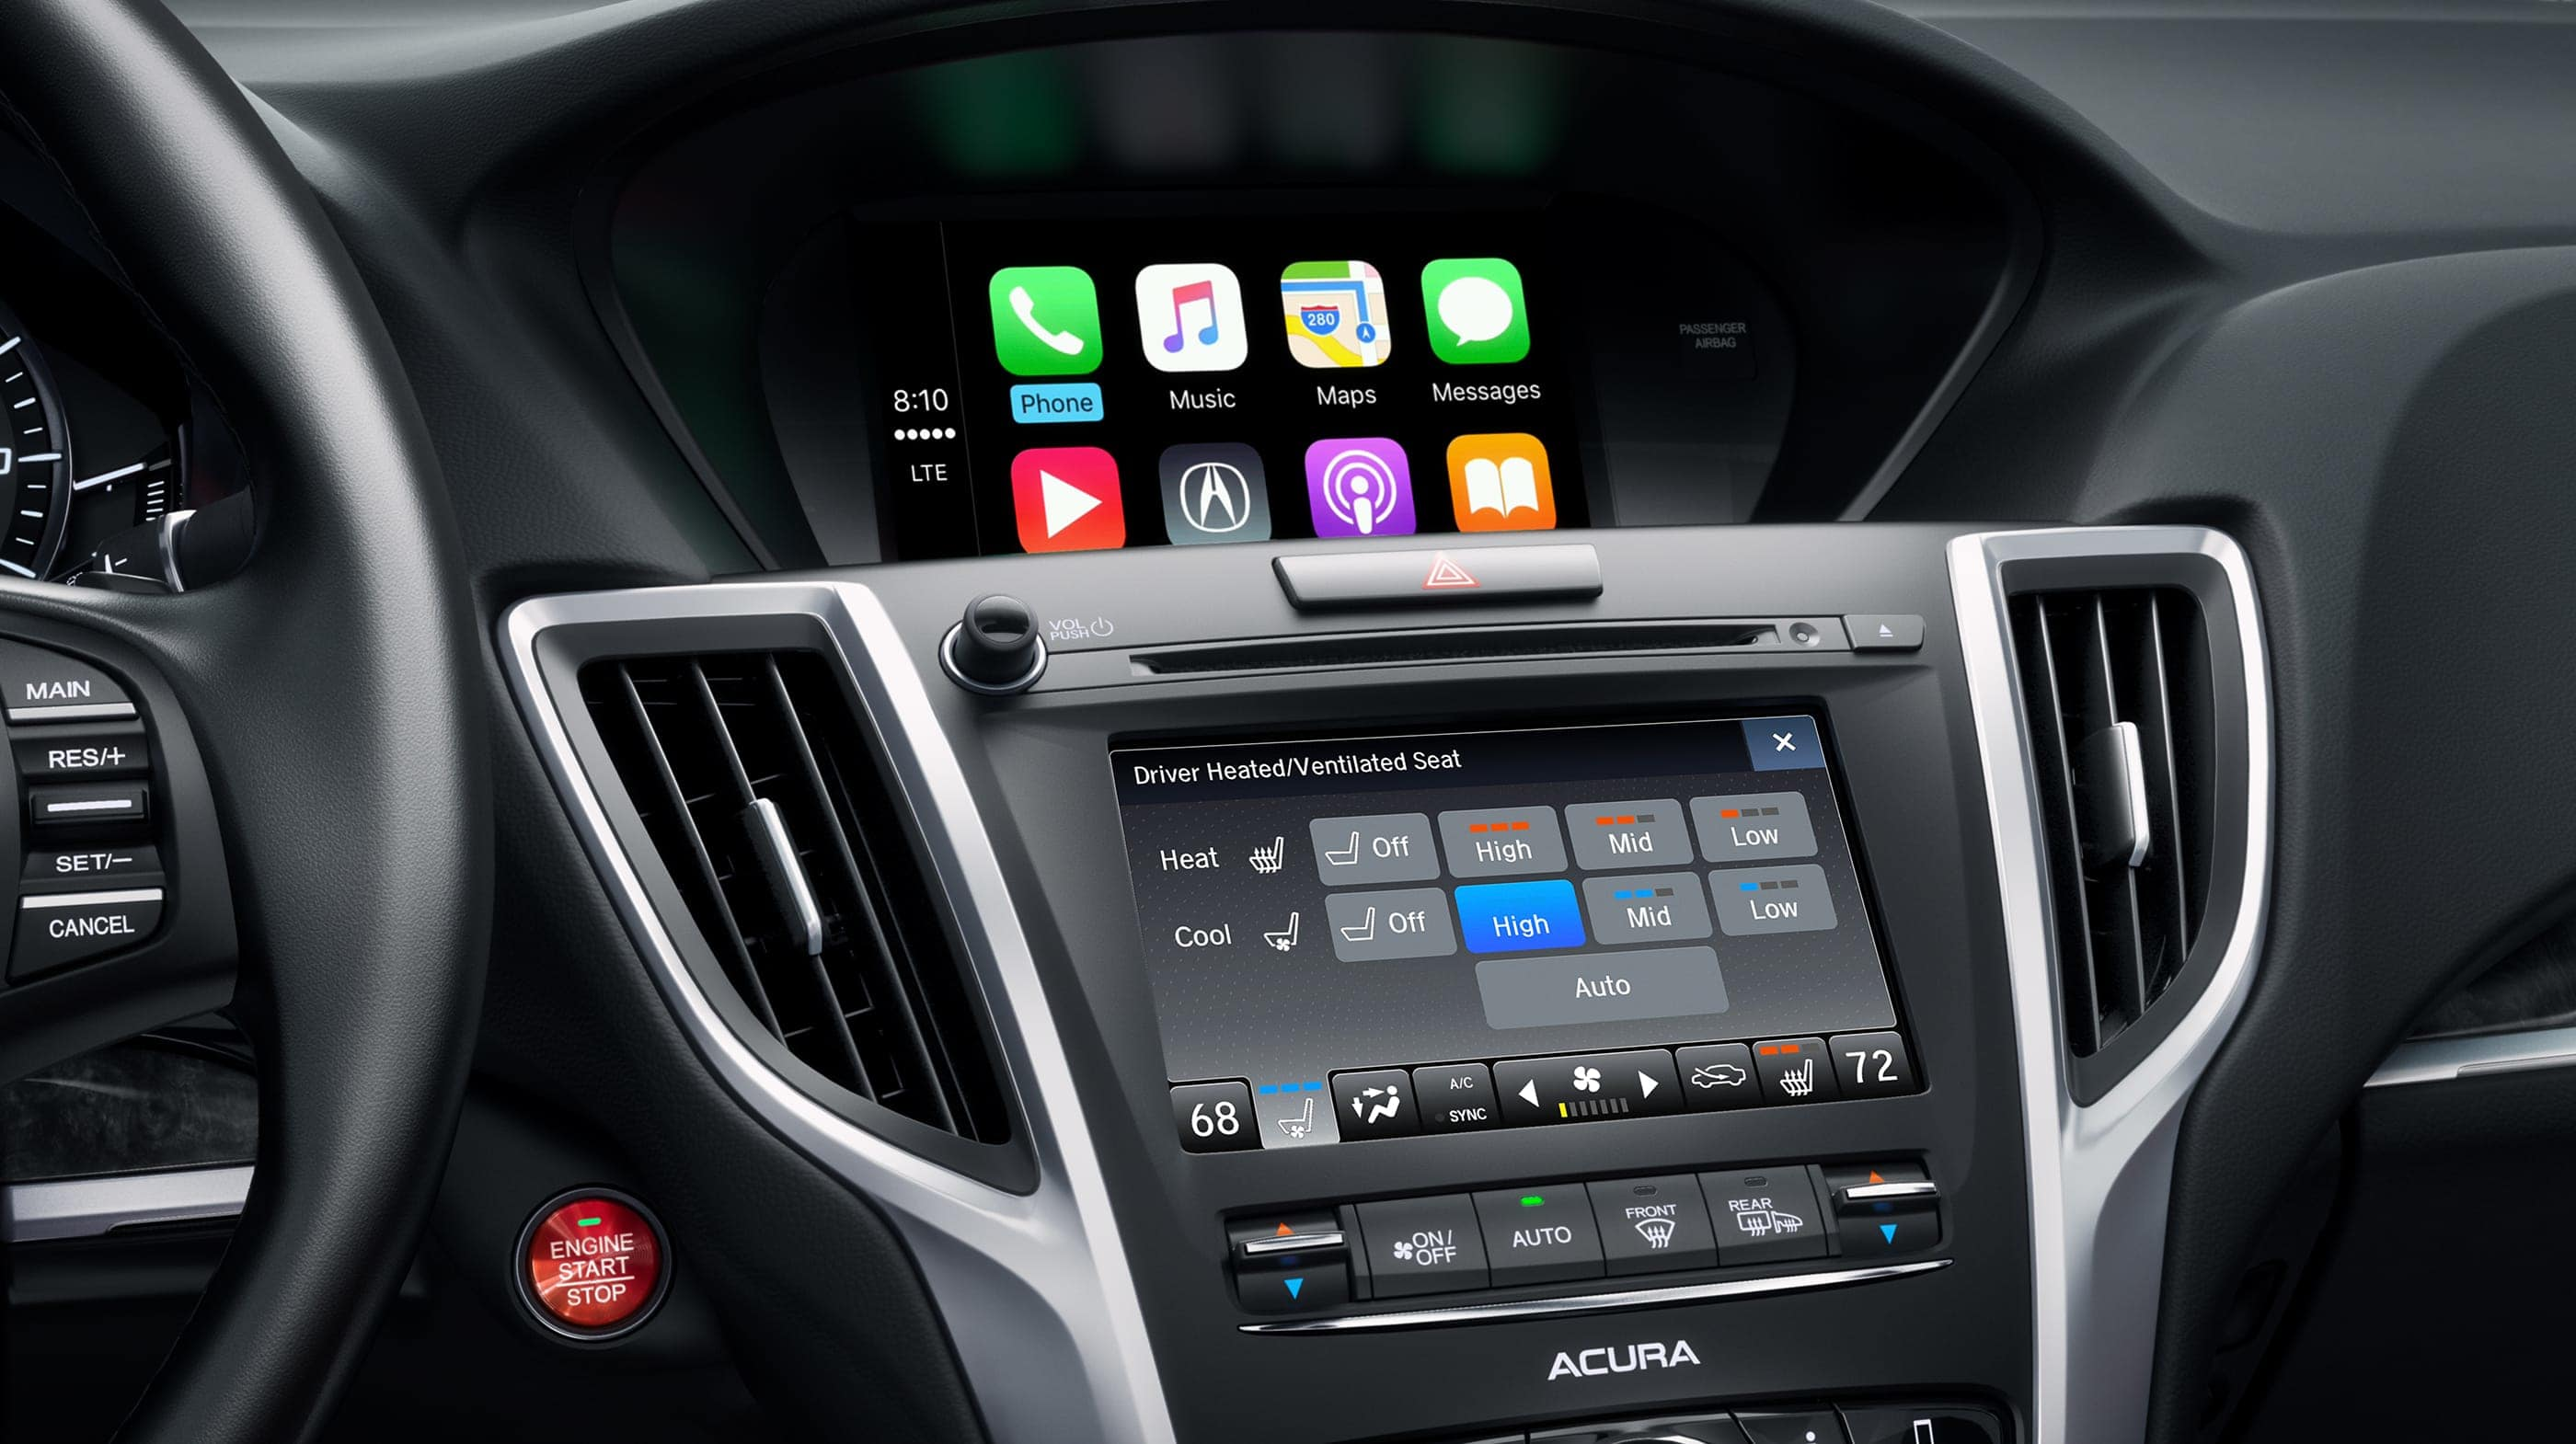 Touchscreen Display in the 2020 TLX